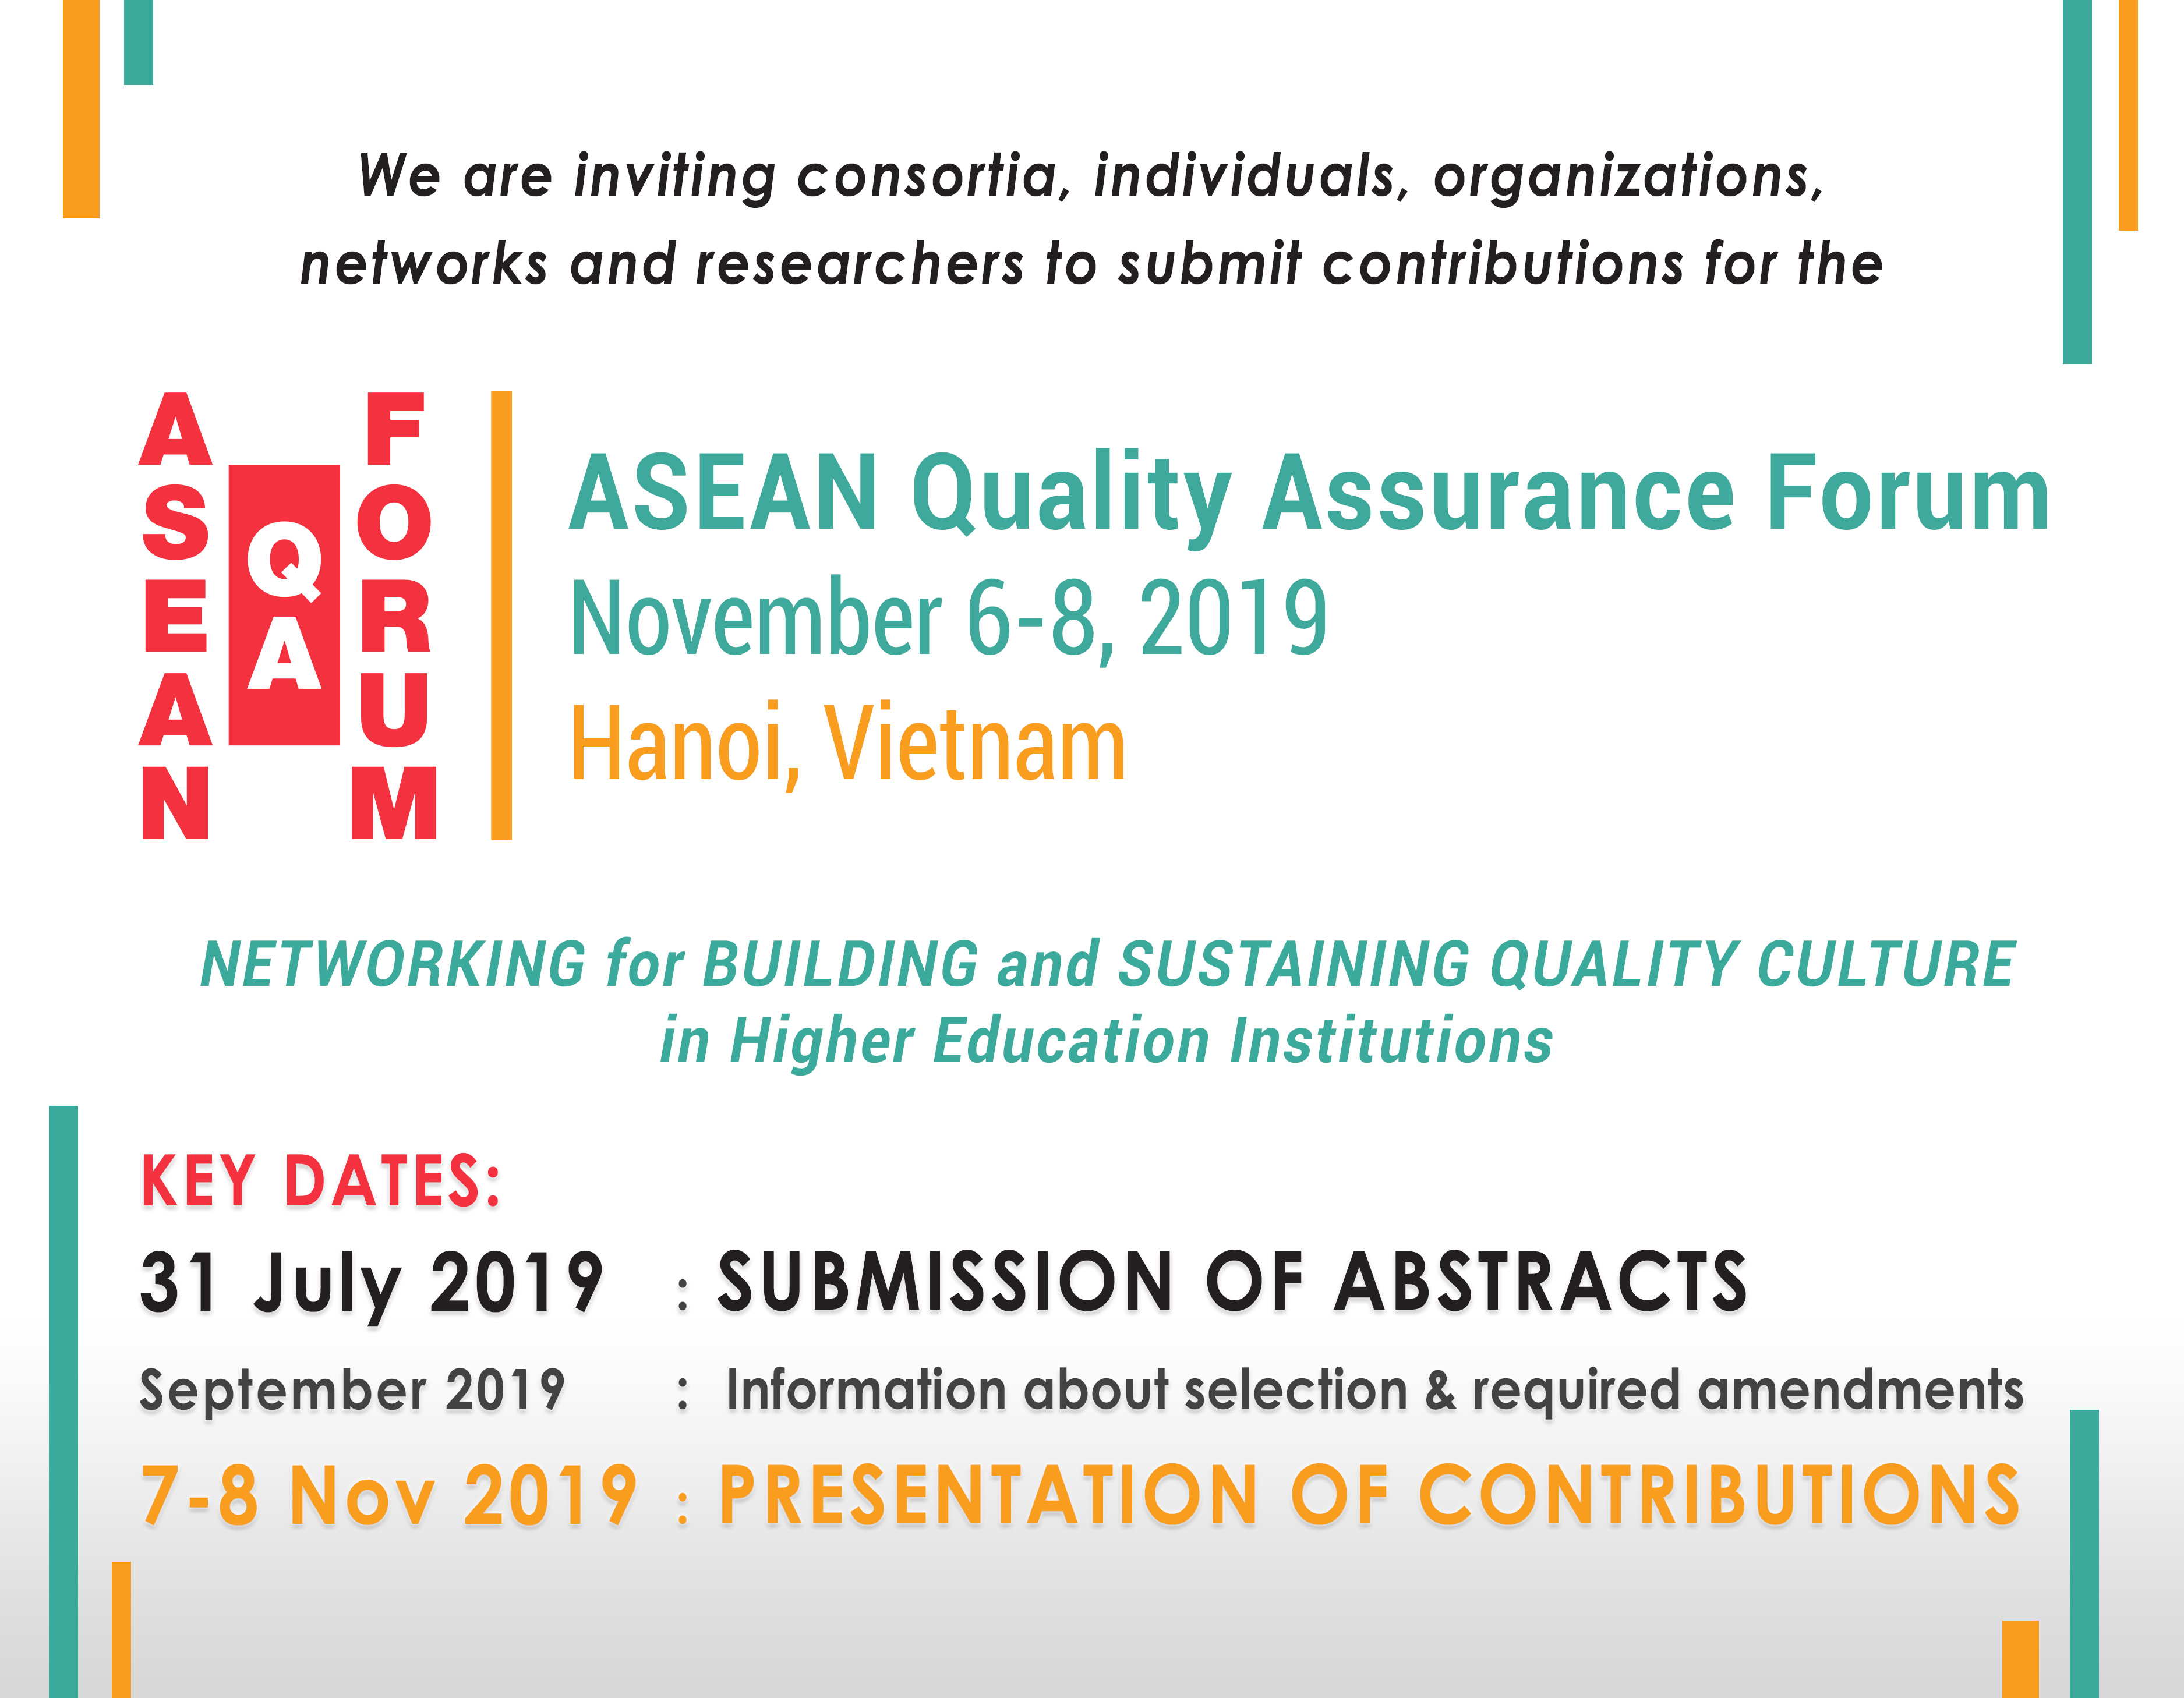 ASEAN-QA Forum Call for Contributions